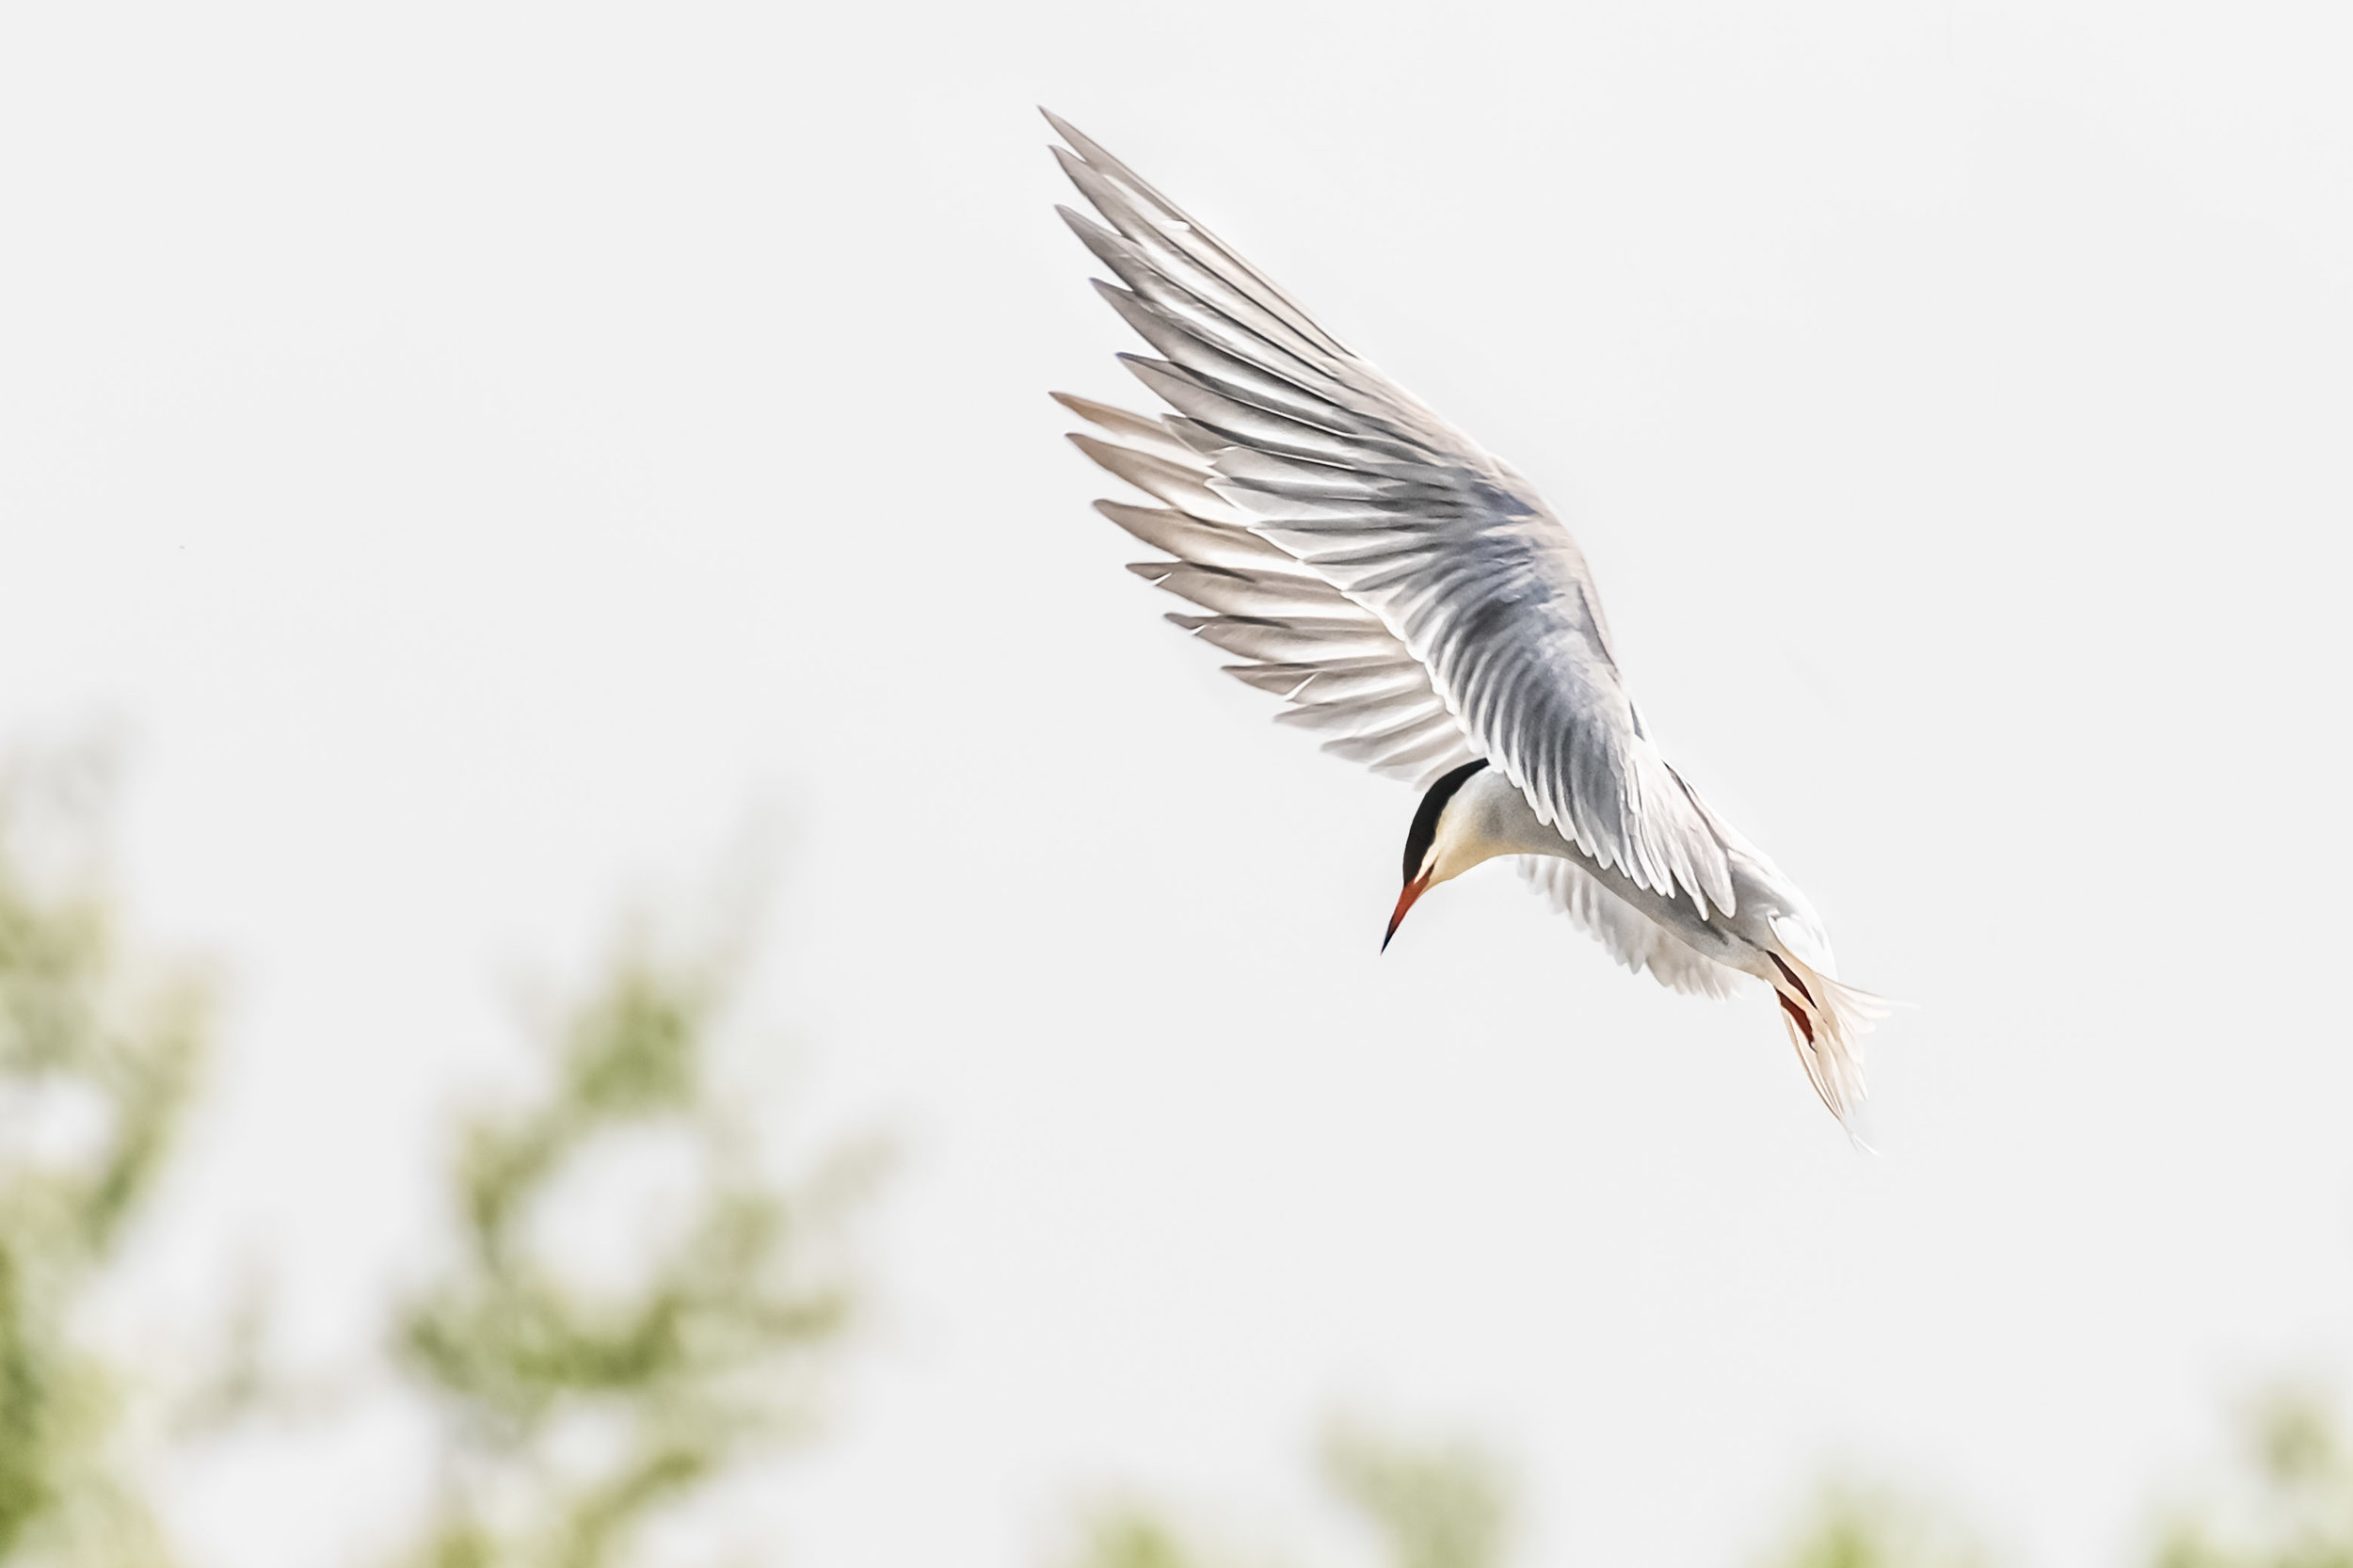 Hovering Tern #1